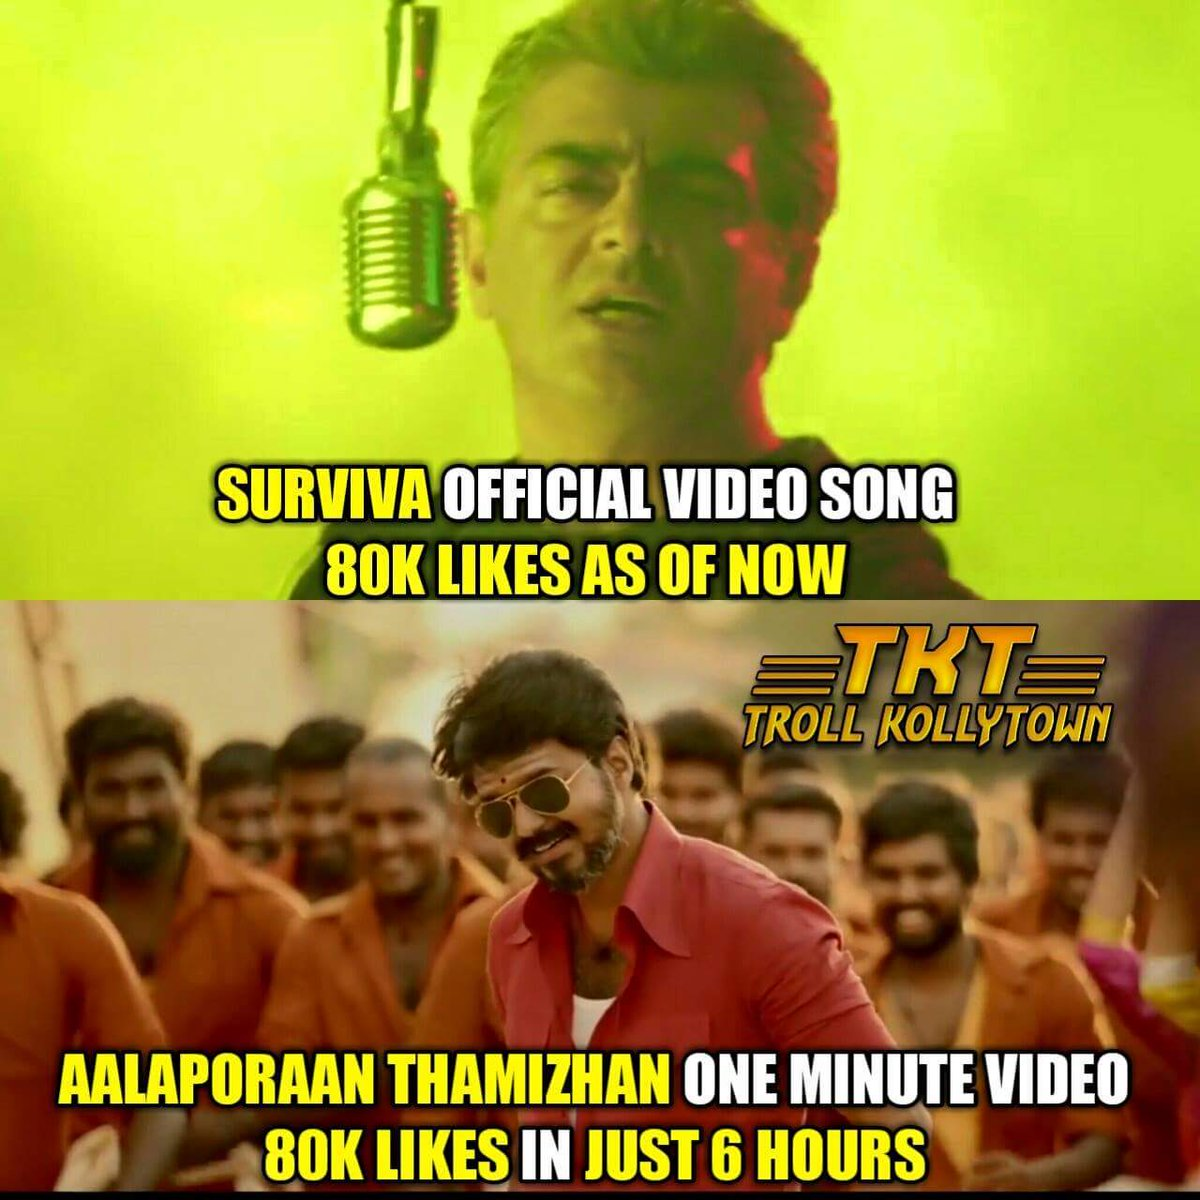 #Surviva Official Video Song 80K  As Of Now #AalaporaanThamizhan 1 Minute Video 80K  In Just 6 Hrs  Now 93K  &amp; 744K   #Mersal #Adirindhi YT Link   https:// youtu.be/ozZ8HpIBsGw  &nbsp;  <br>http://pic.twitter.com/XkH6Lxu7Wg